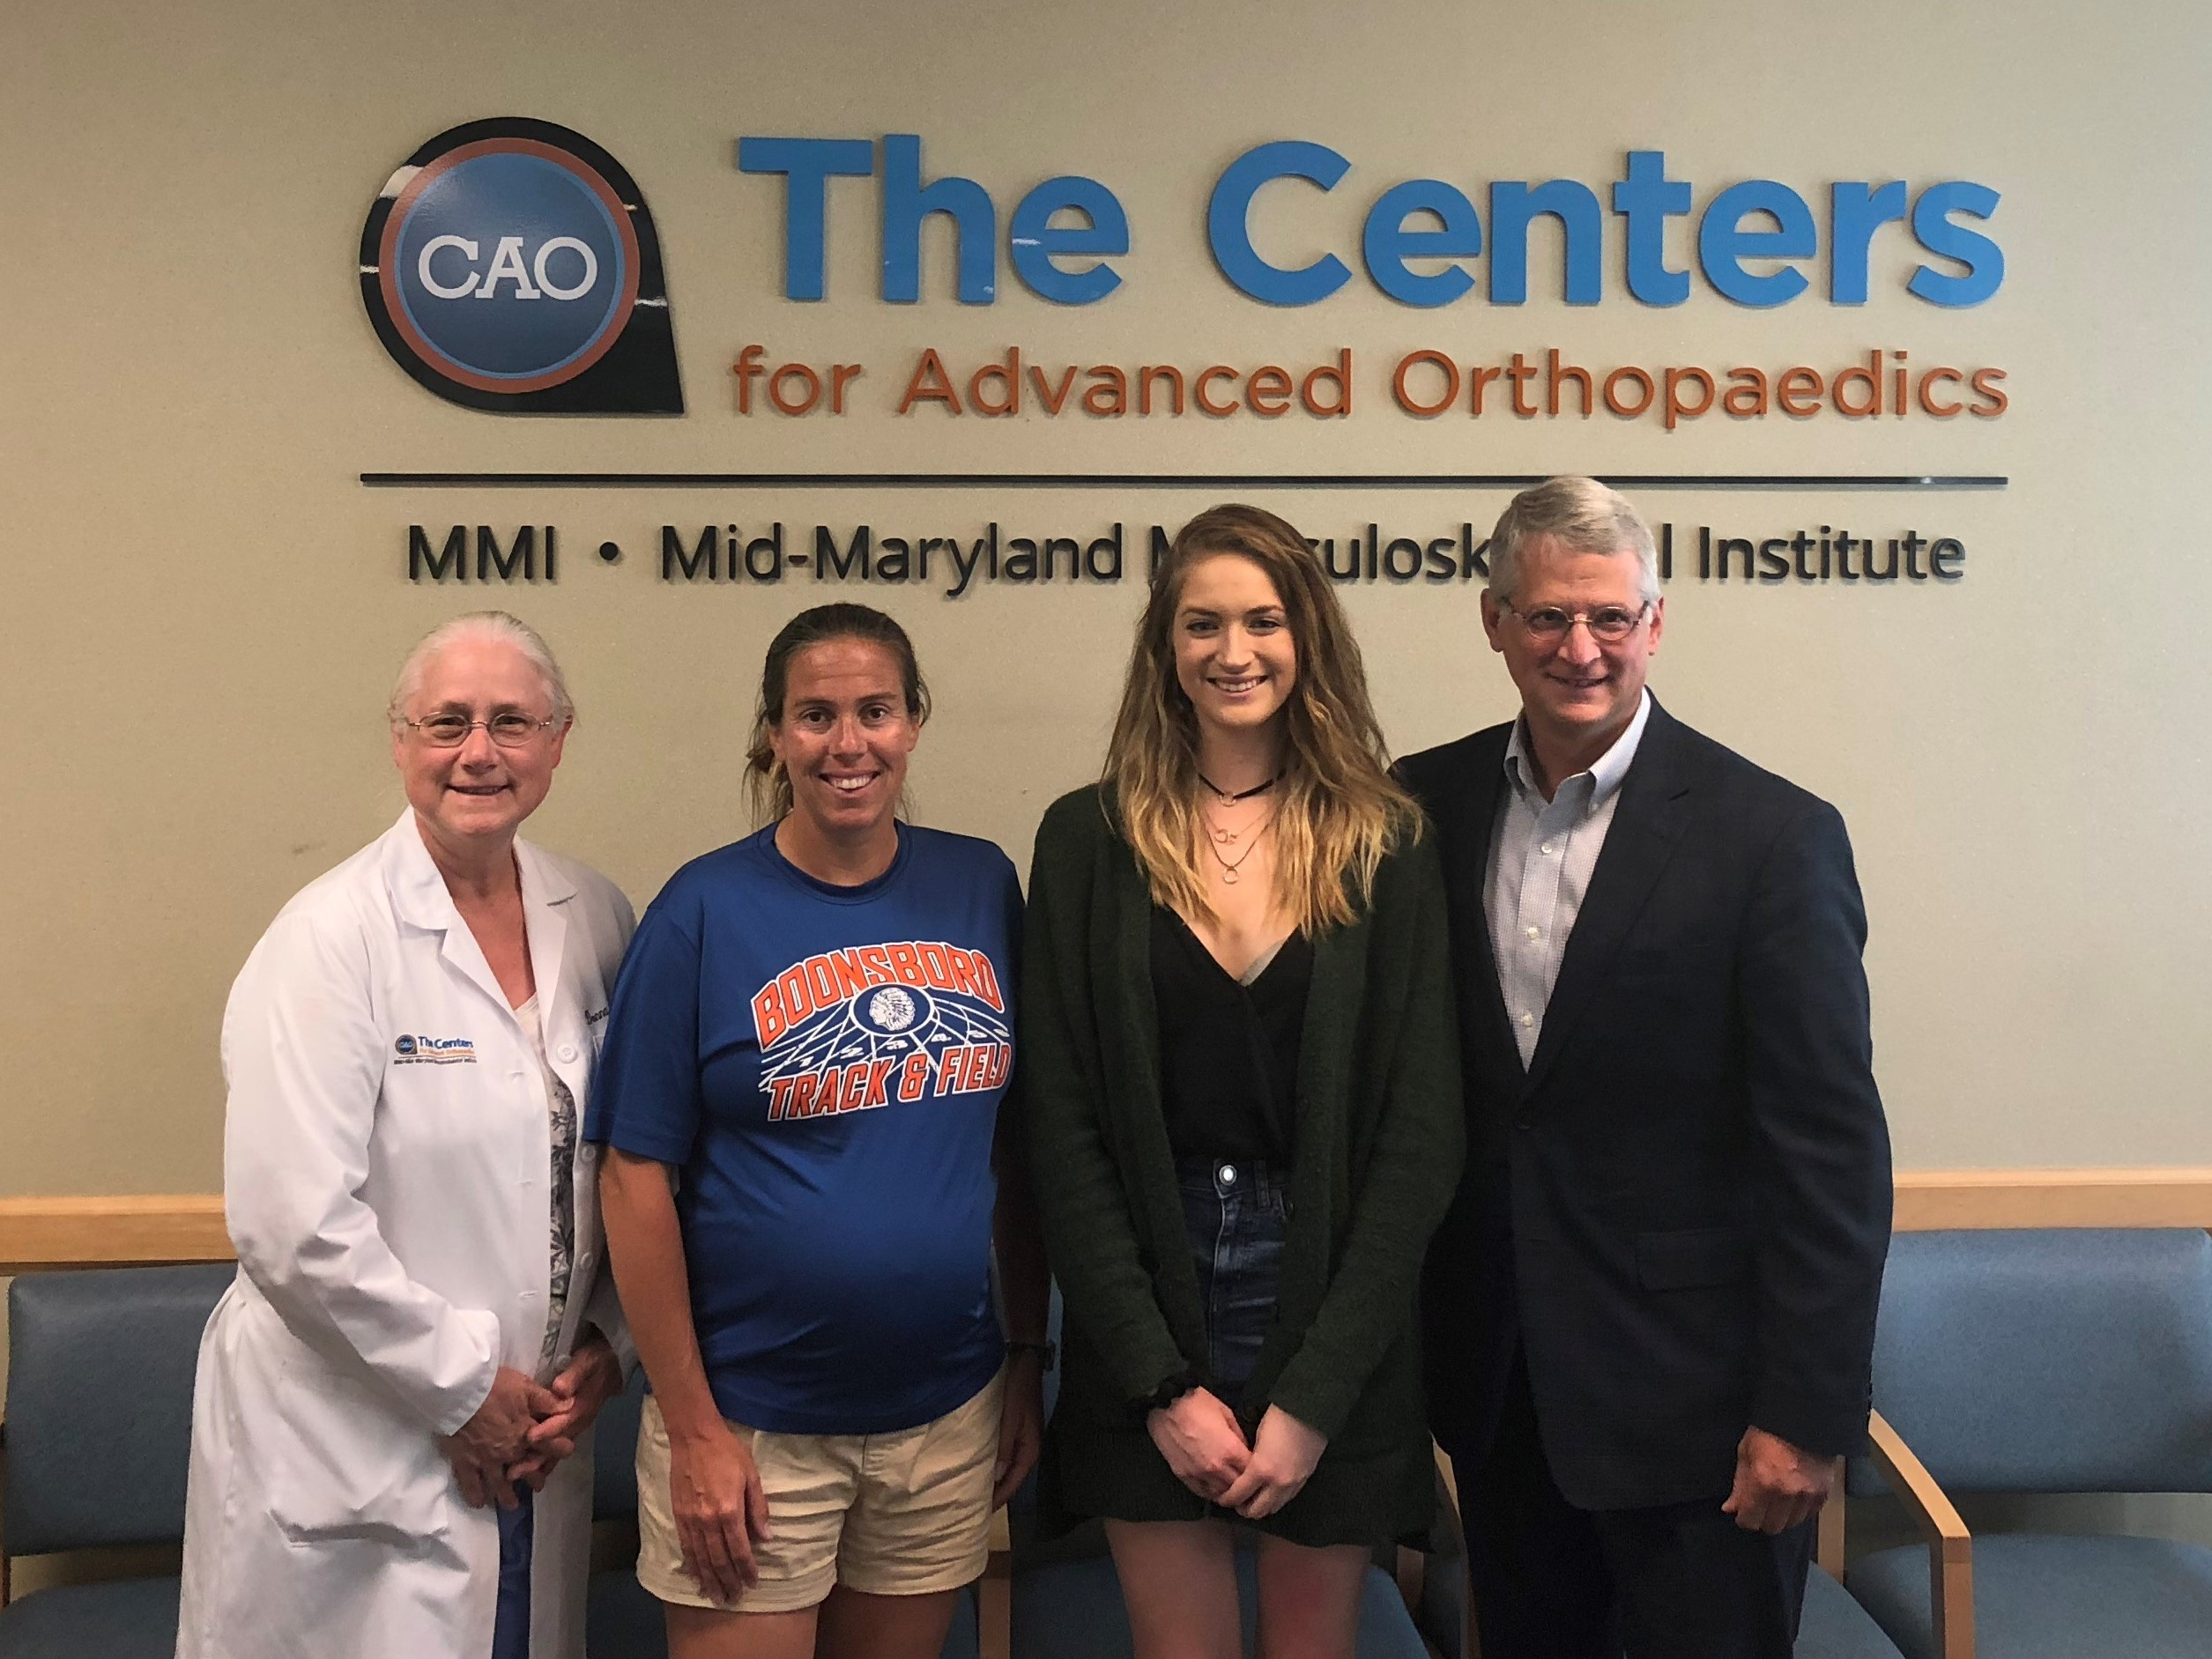 MMI- Orthopedic Doctors and Care